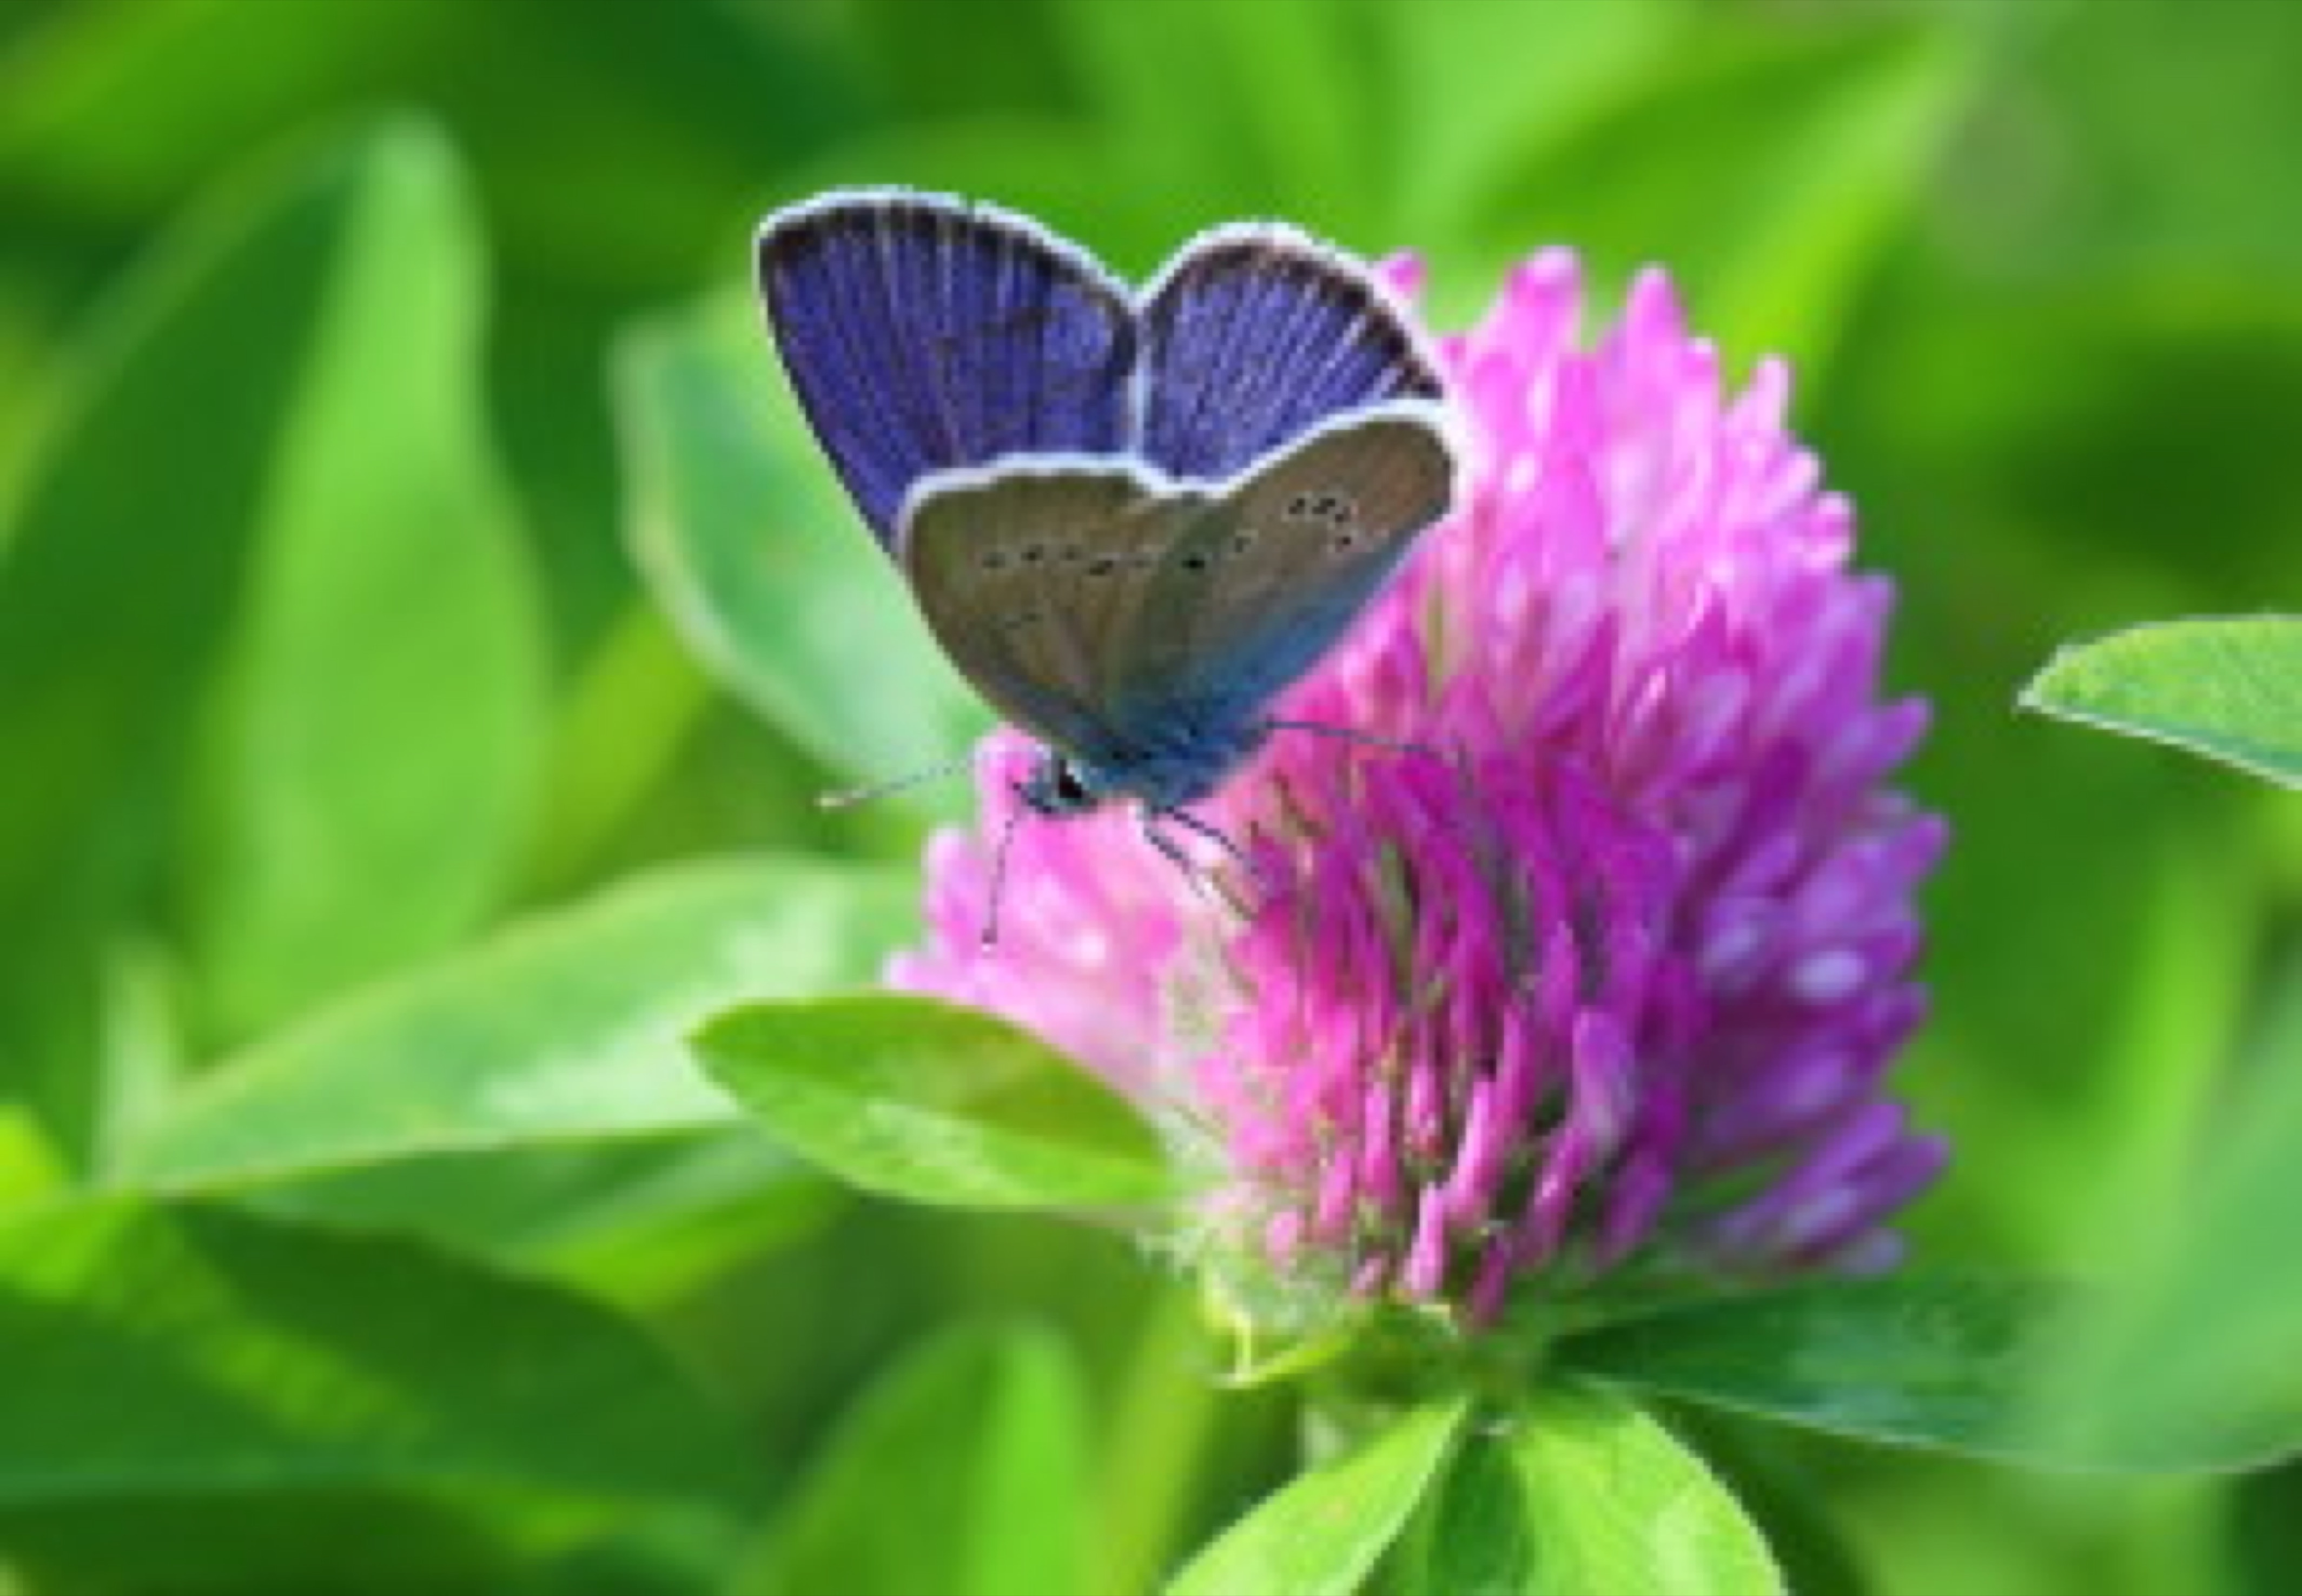 Cyaniris semiargus (Rottemburg, 1775). A butterfly on a clover flower